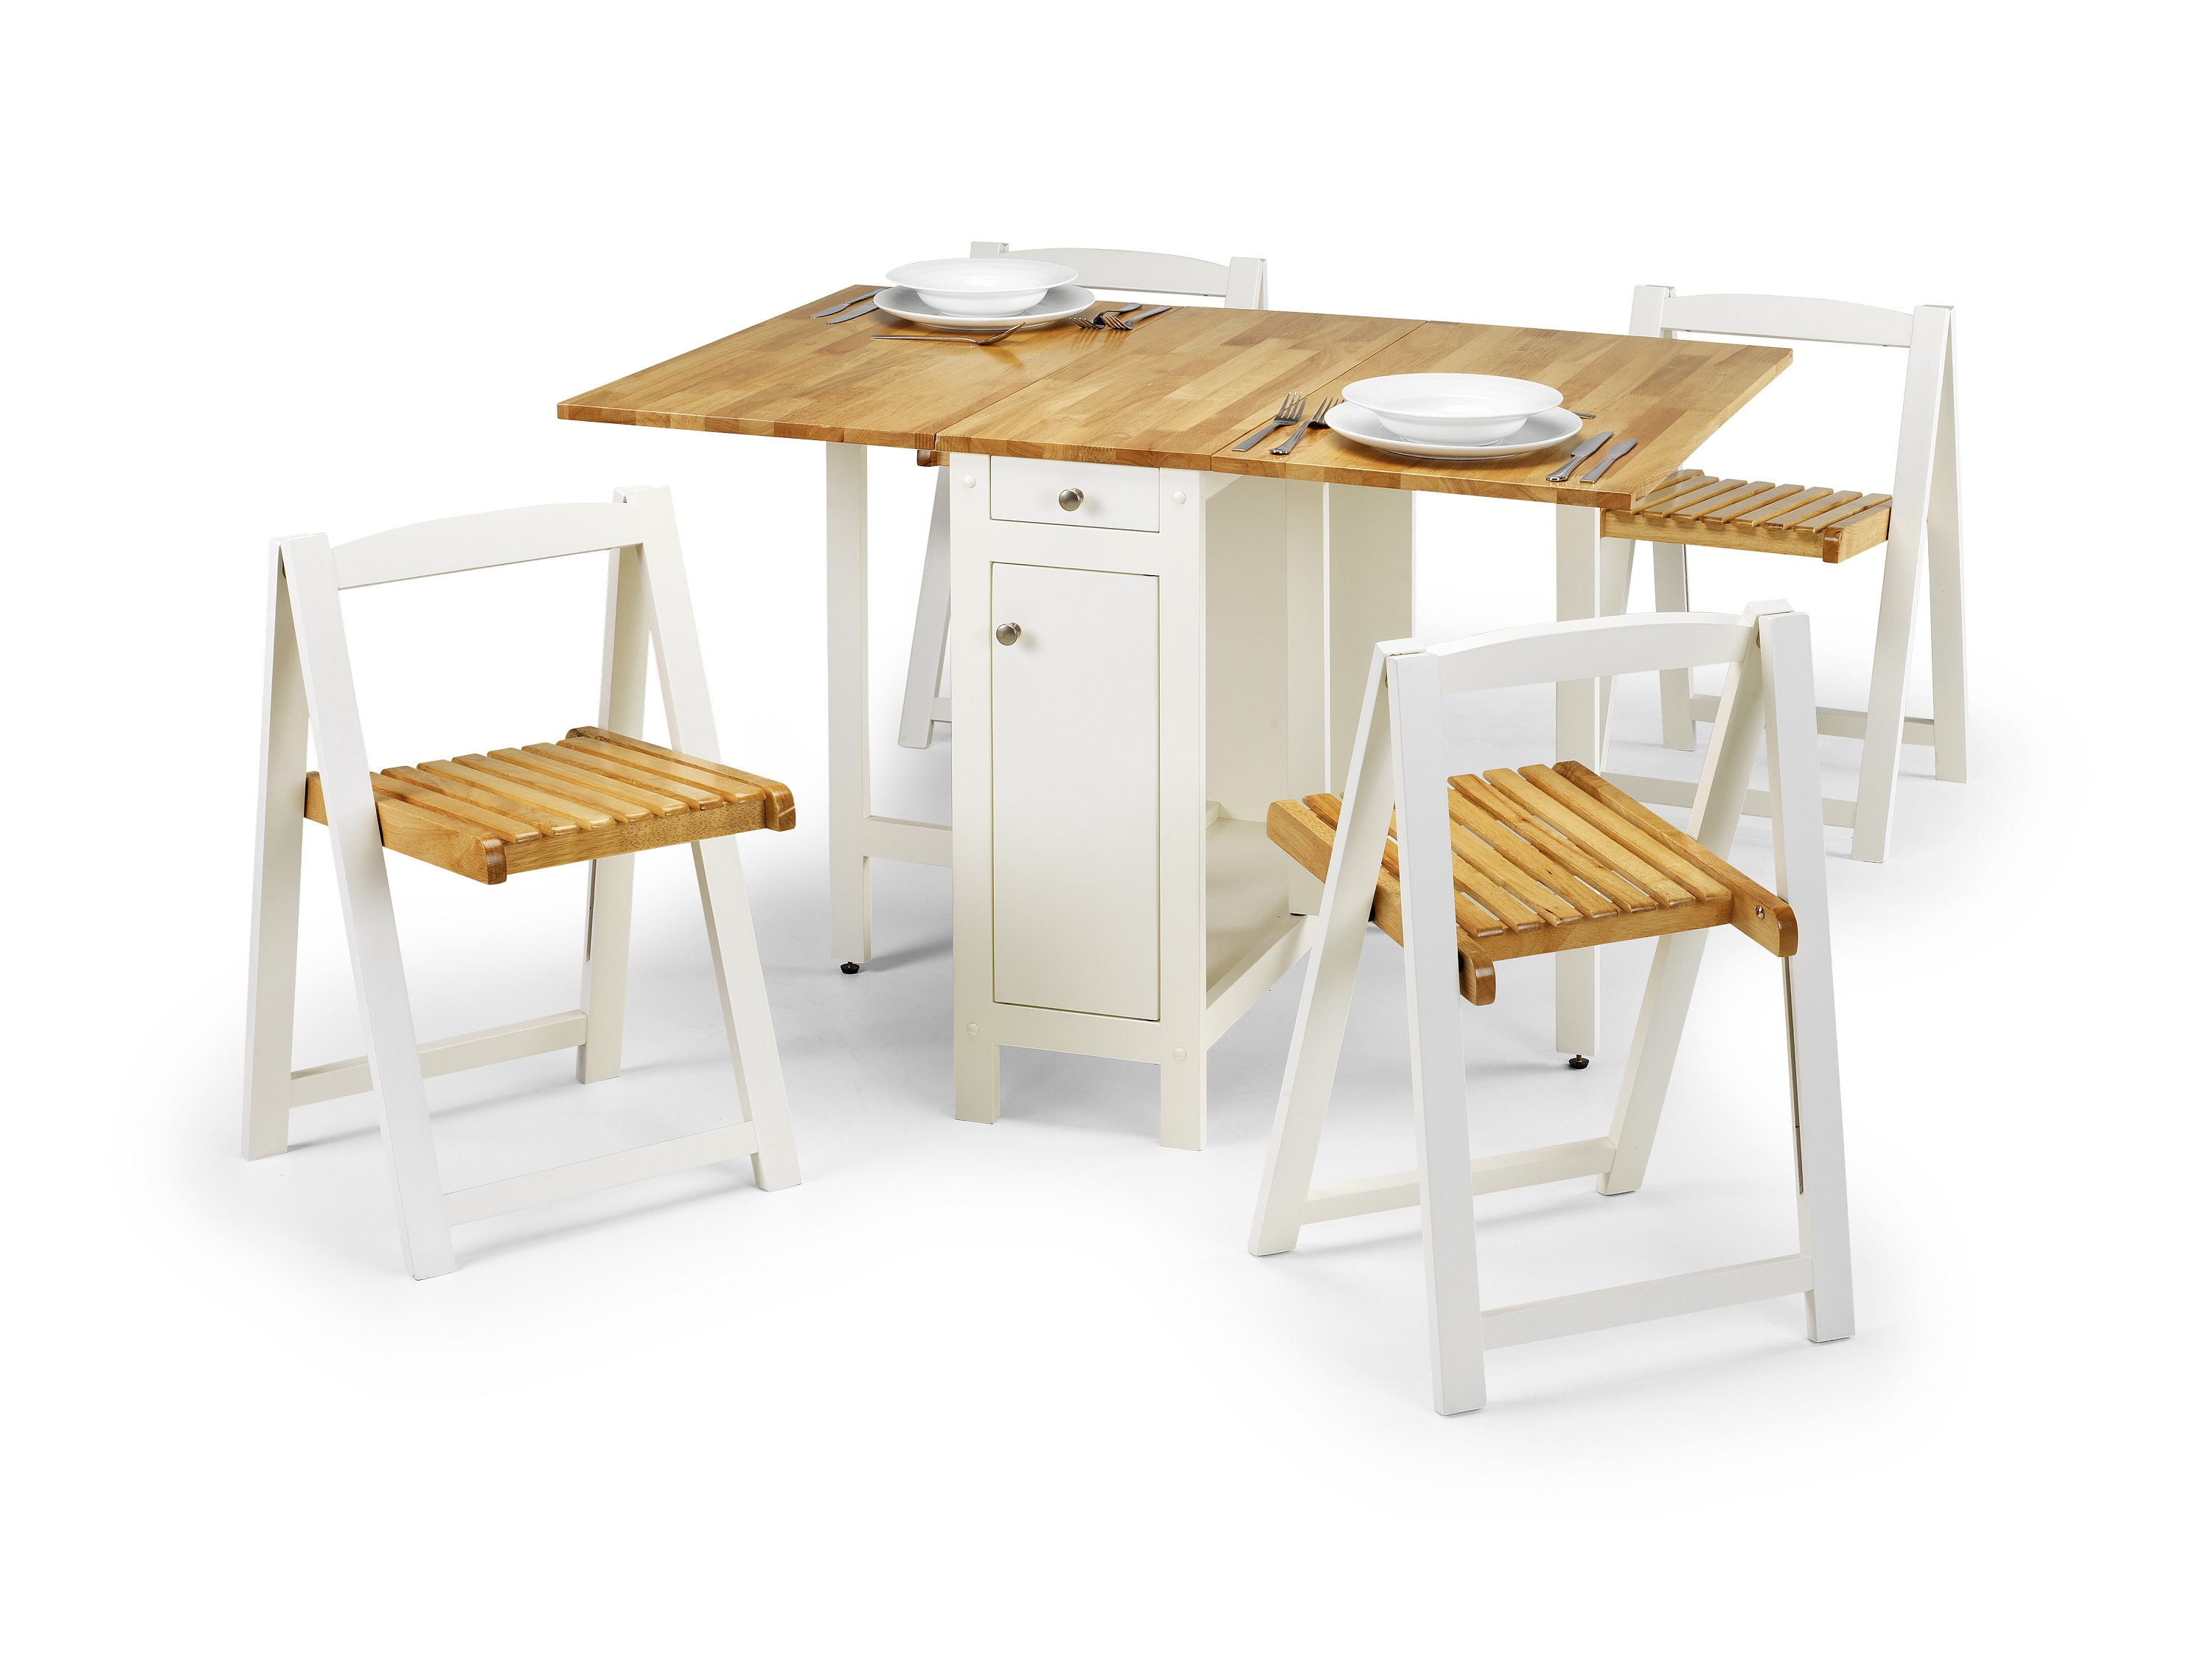 Julian Bowen Savoy Dining Set in White and Natural Finish £193